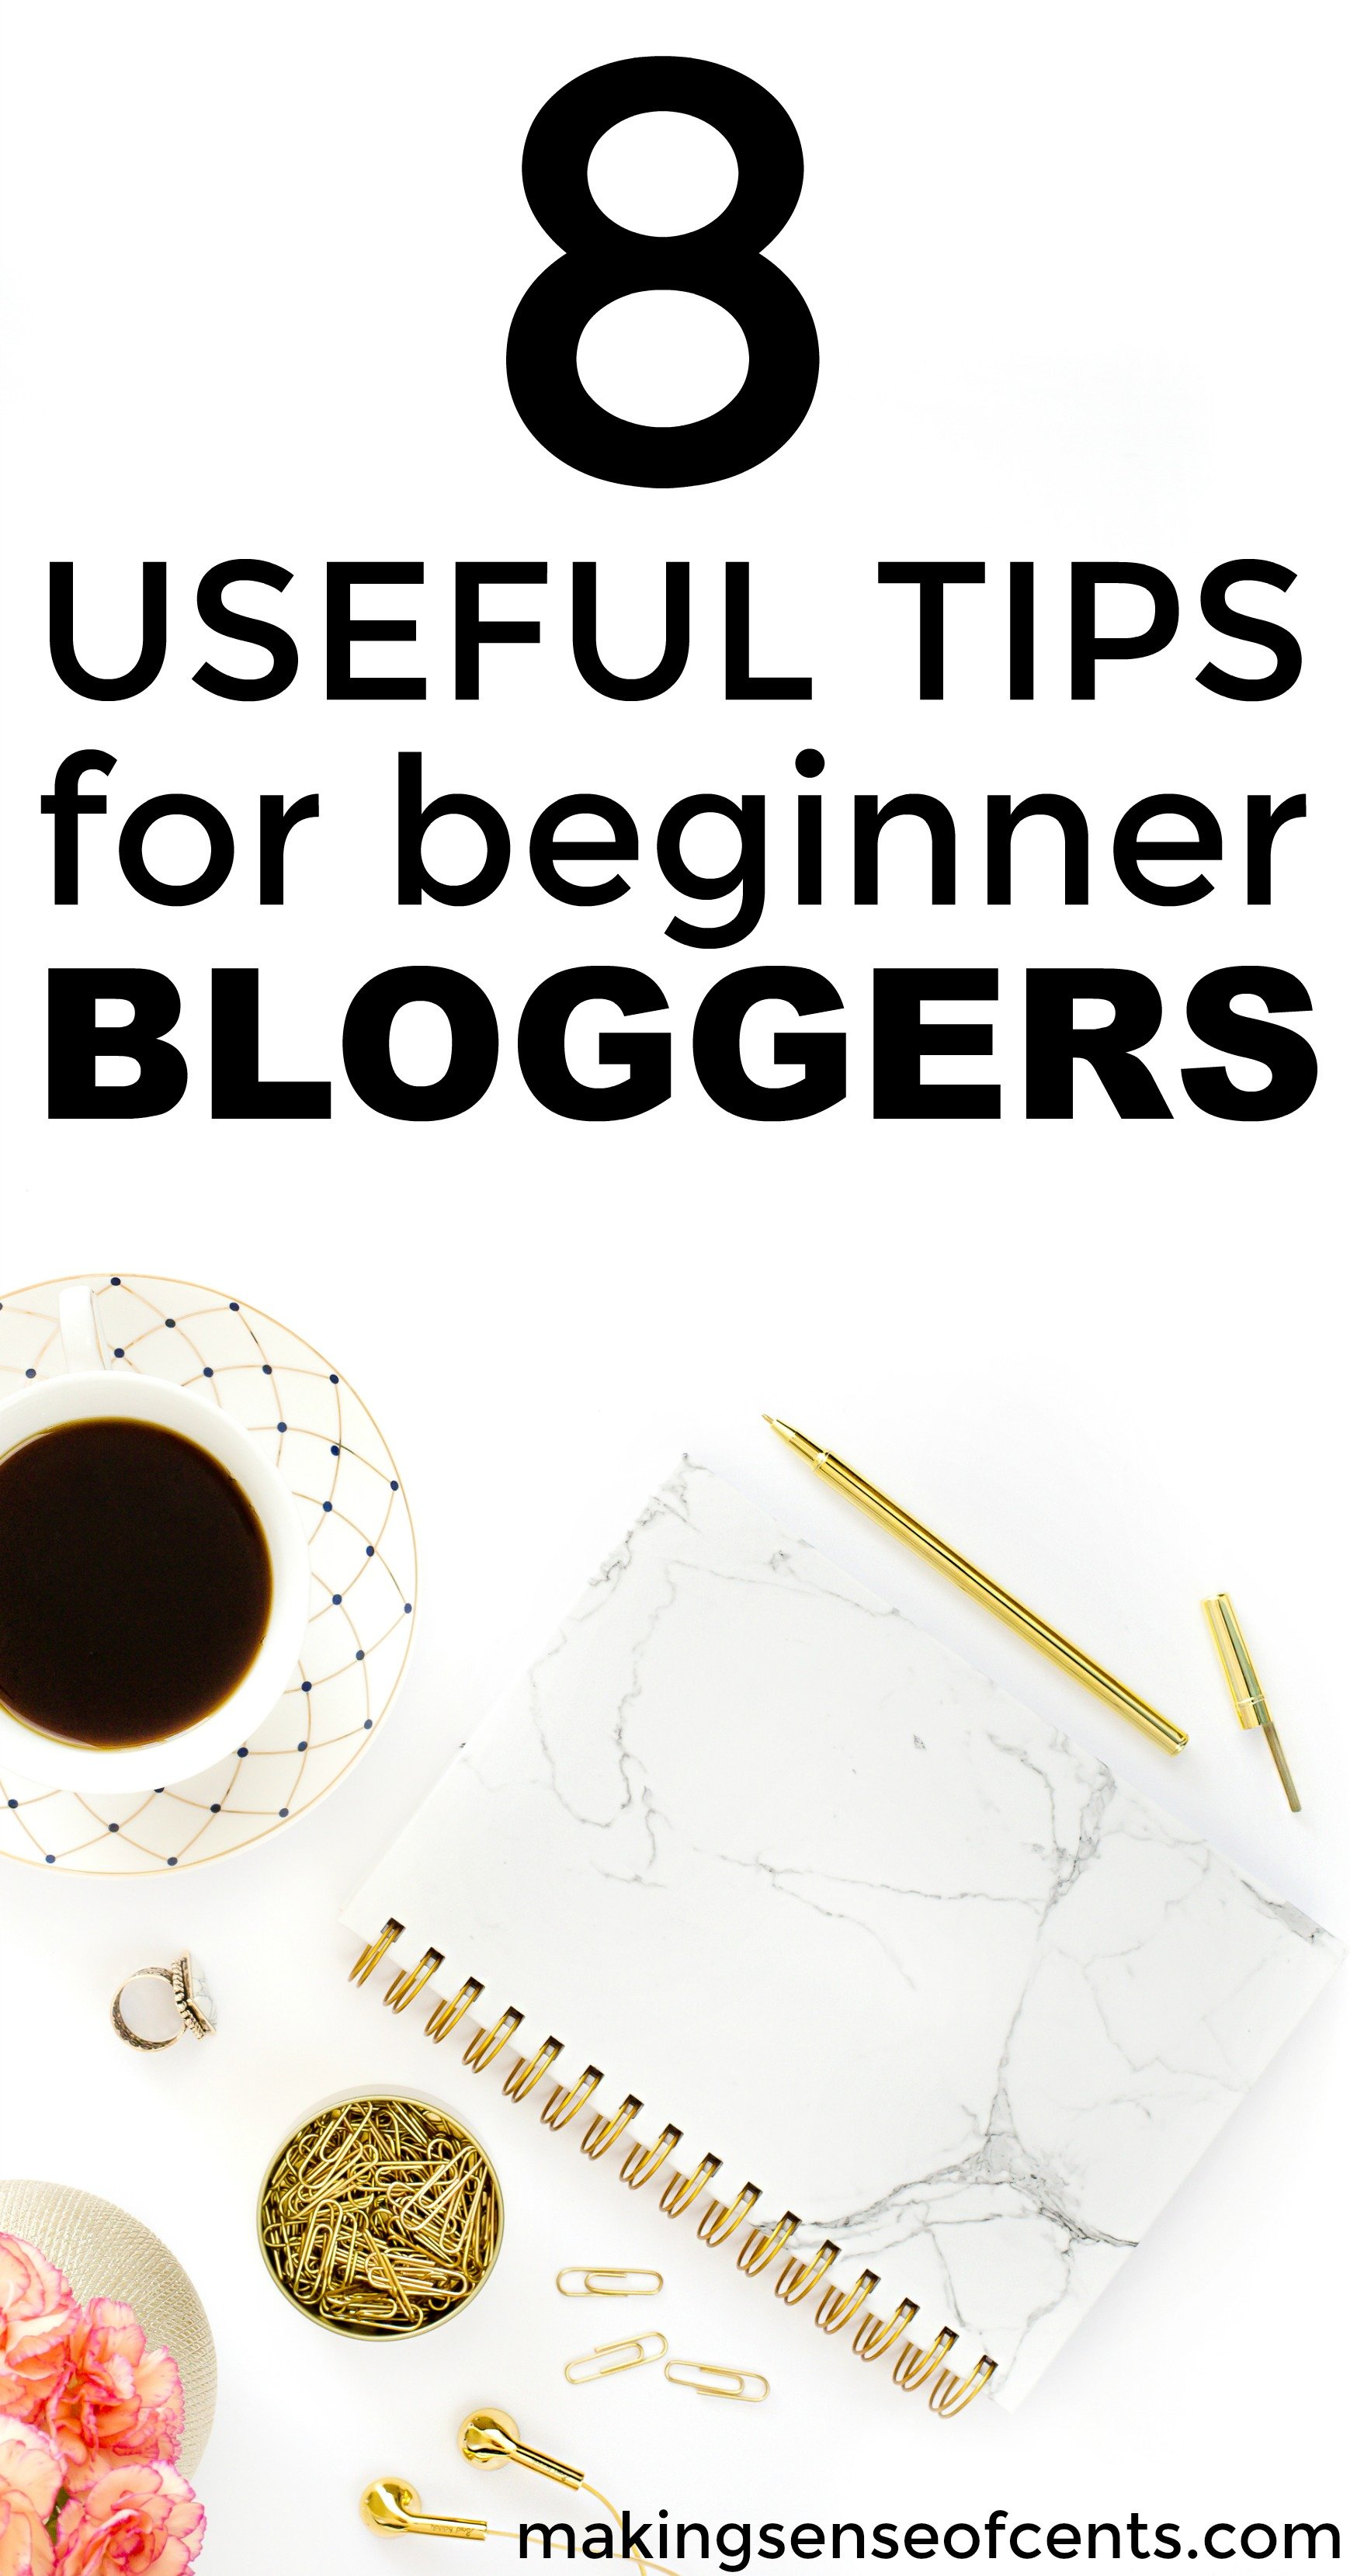 Check out this list of 8 useful tips for beginner bloggers. This is a great list!